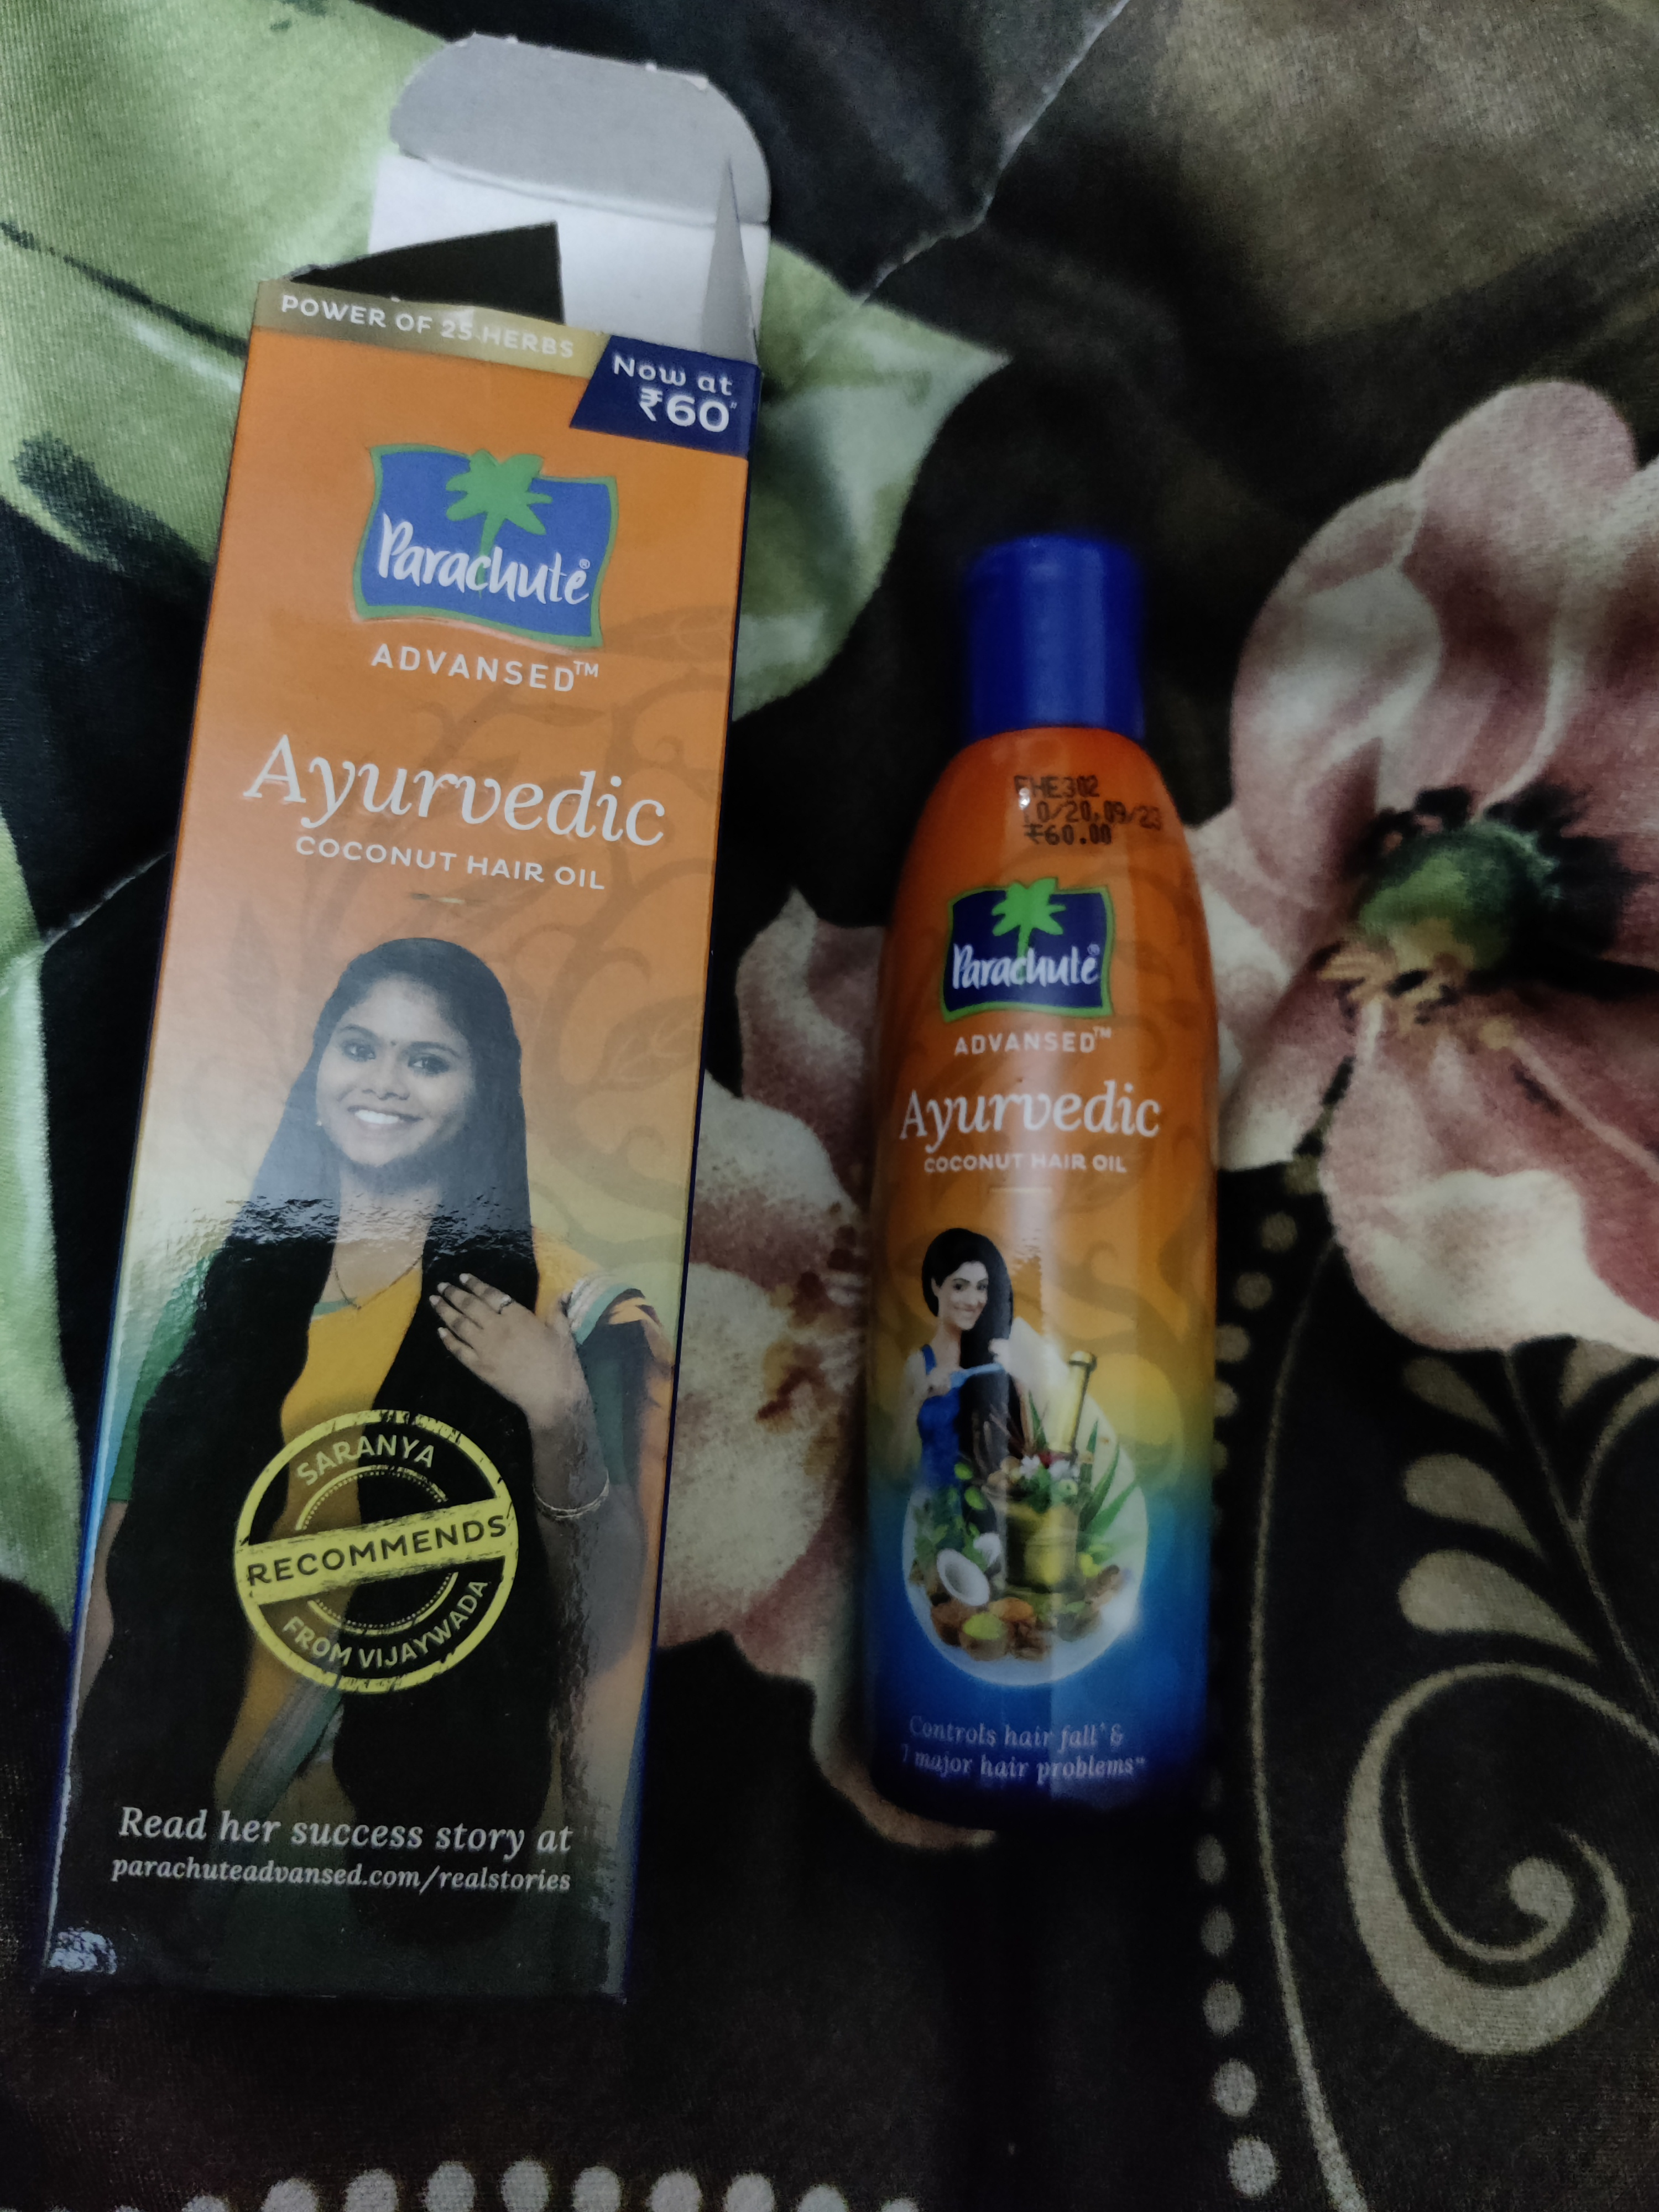 Parachute Advansed Ayurvedic Coconut Hair Oil -Best oil for post delivery hair fall-By mommynsaanjh